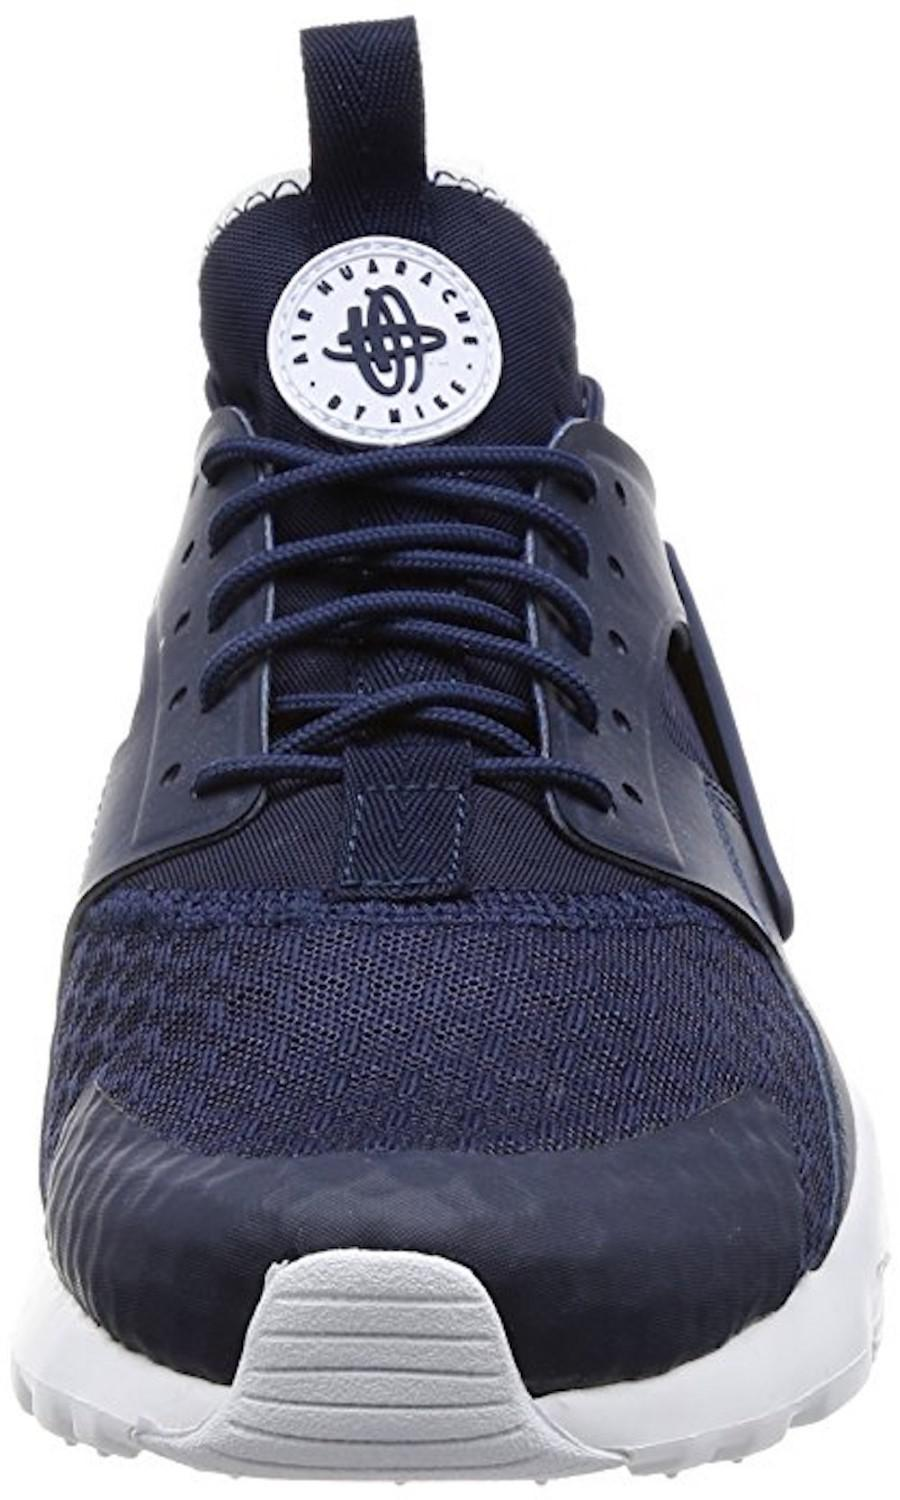 24d7134e5ae3f ... order lyst nike air huarache run ultra midnight navy obsidian white  0c6cb 3d645